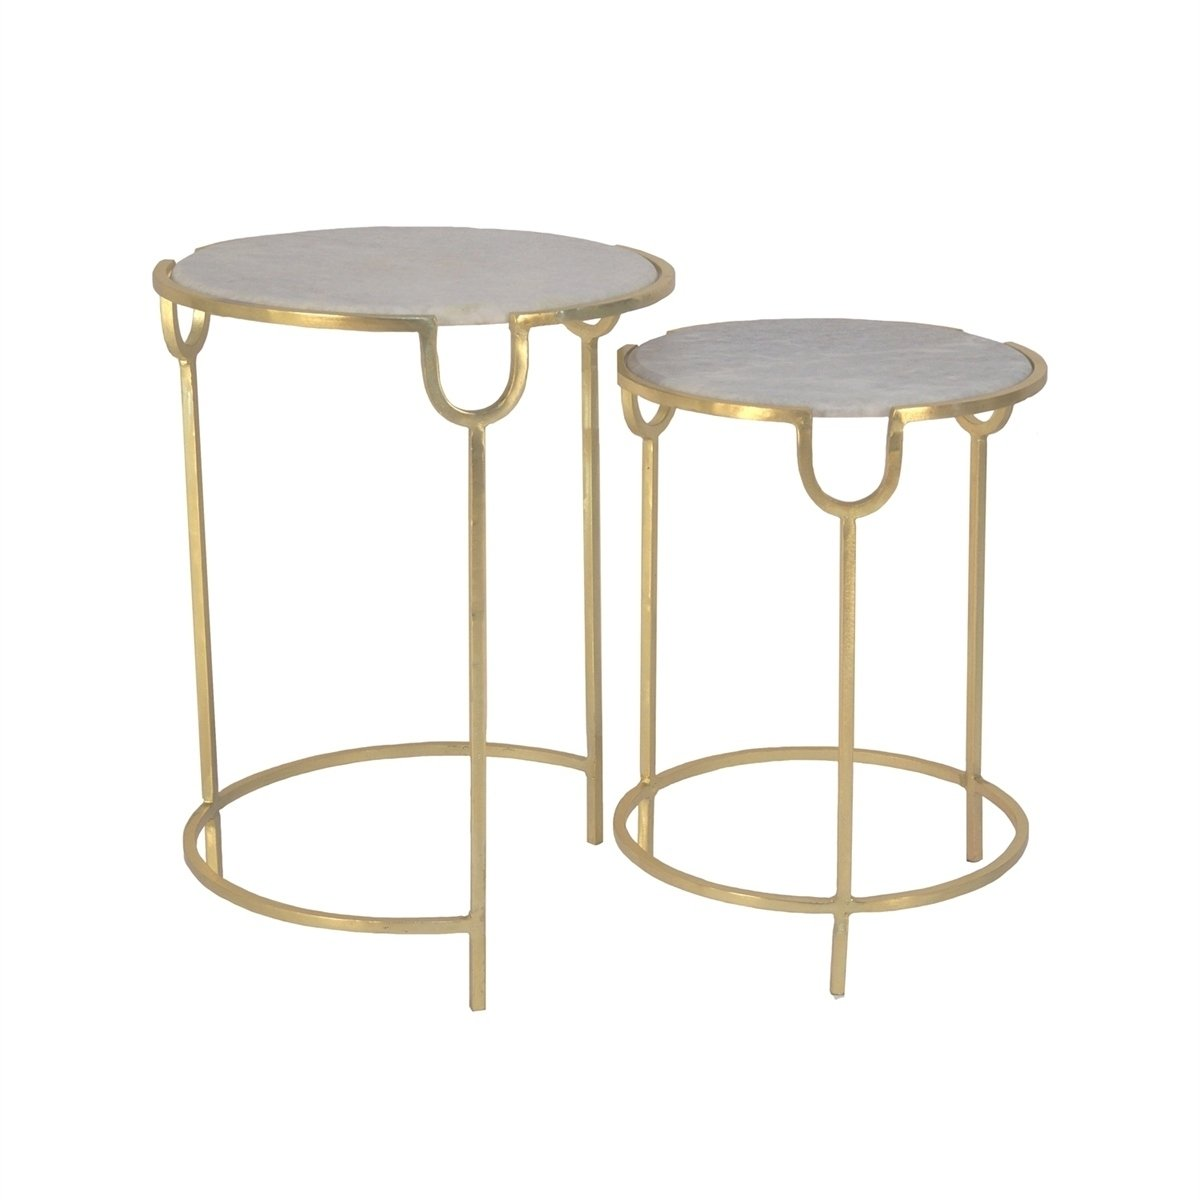 sagebrook home iron accent tables marble top gold metalglass inches set table with free shipping today wicker patio and chairs trestle ashley bedroom furniture yellow outdoor side